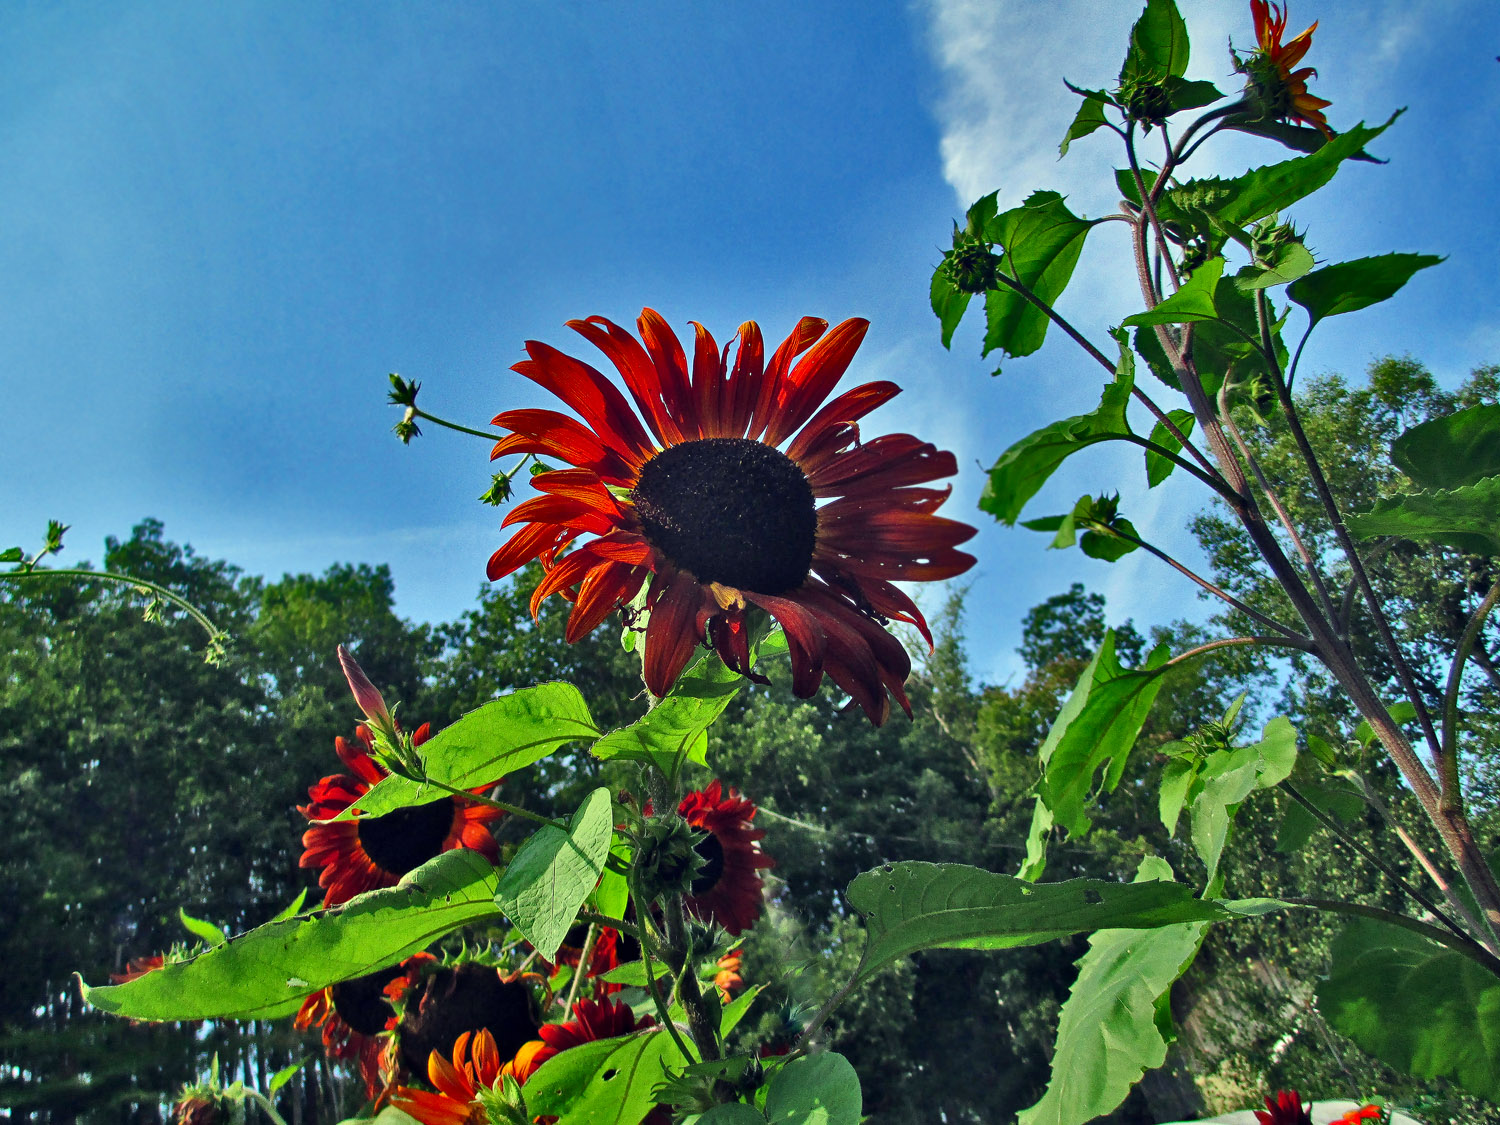 reaching for the sky img aw author sava gregory a and verena